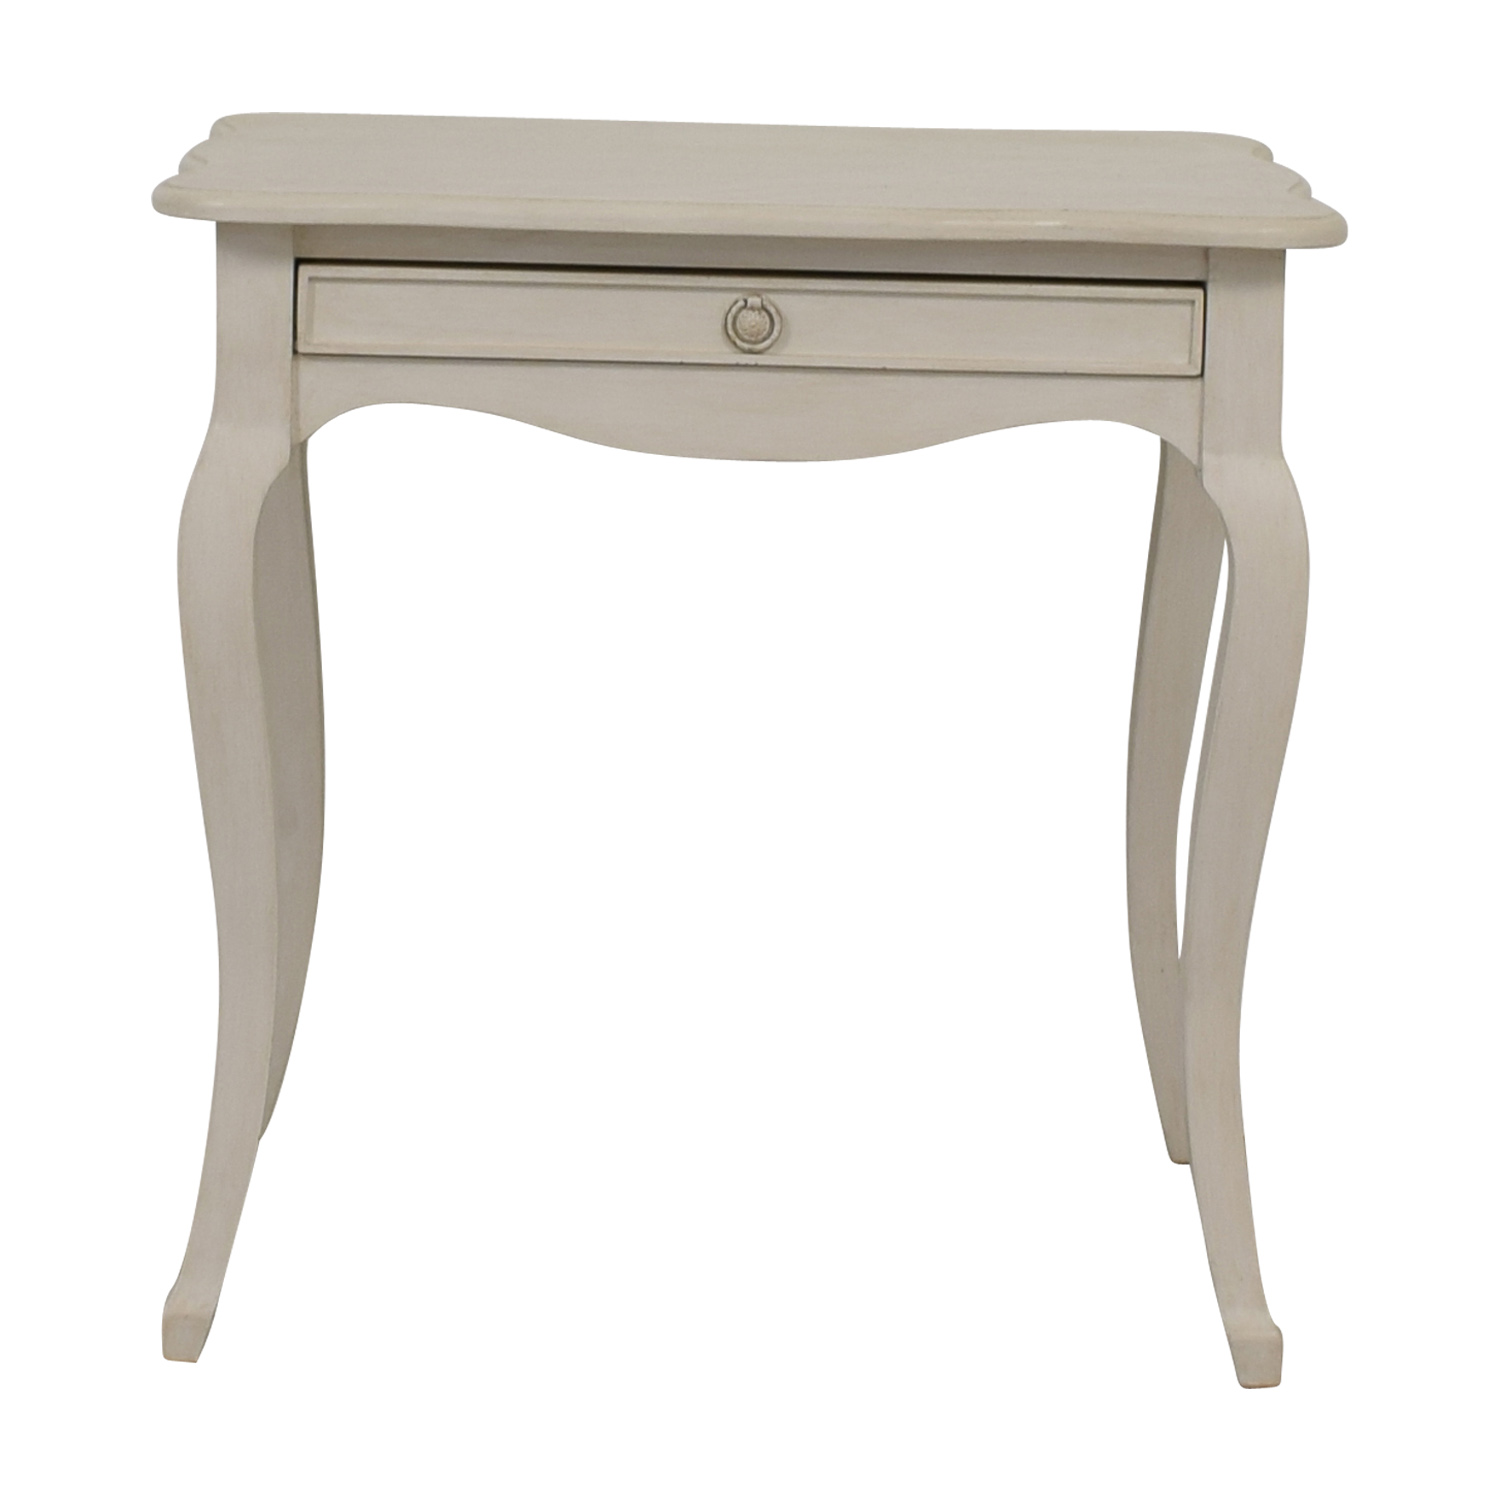 Off White Single-Drawer Night Table for sale